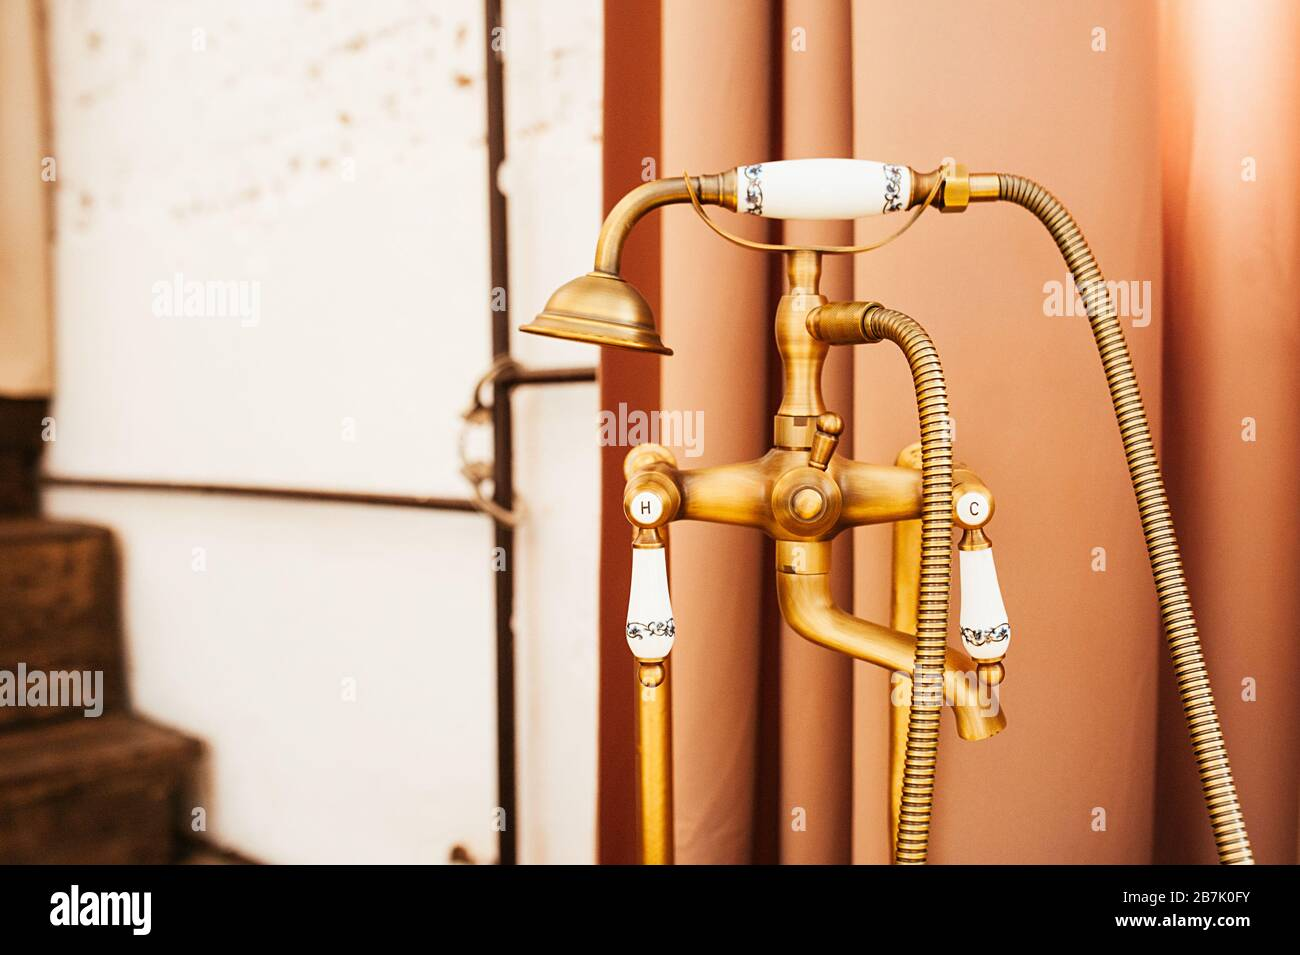 Old Vintage Gold Faucet For Hot And Cold Bath Water And Shower Handle Stock Photo Alamy